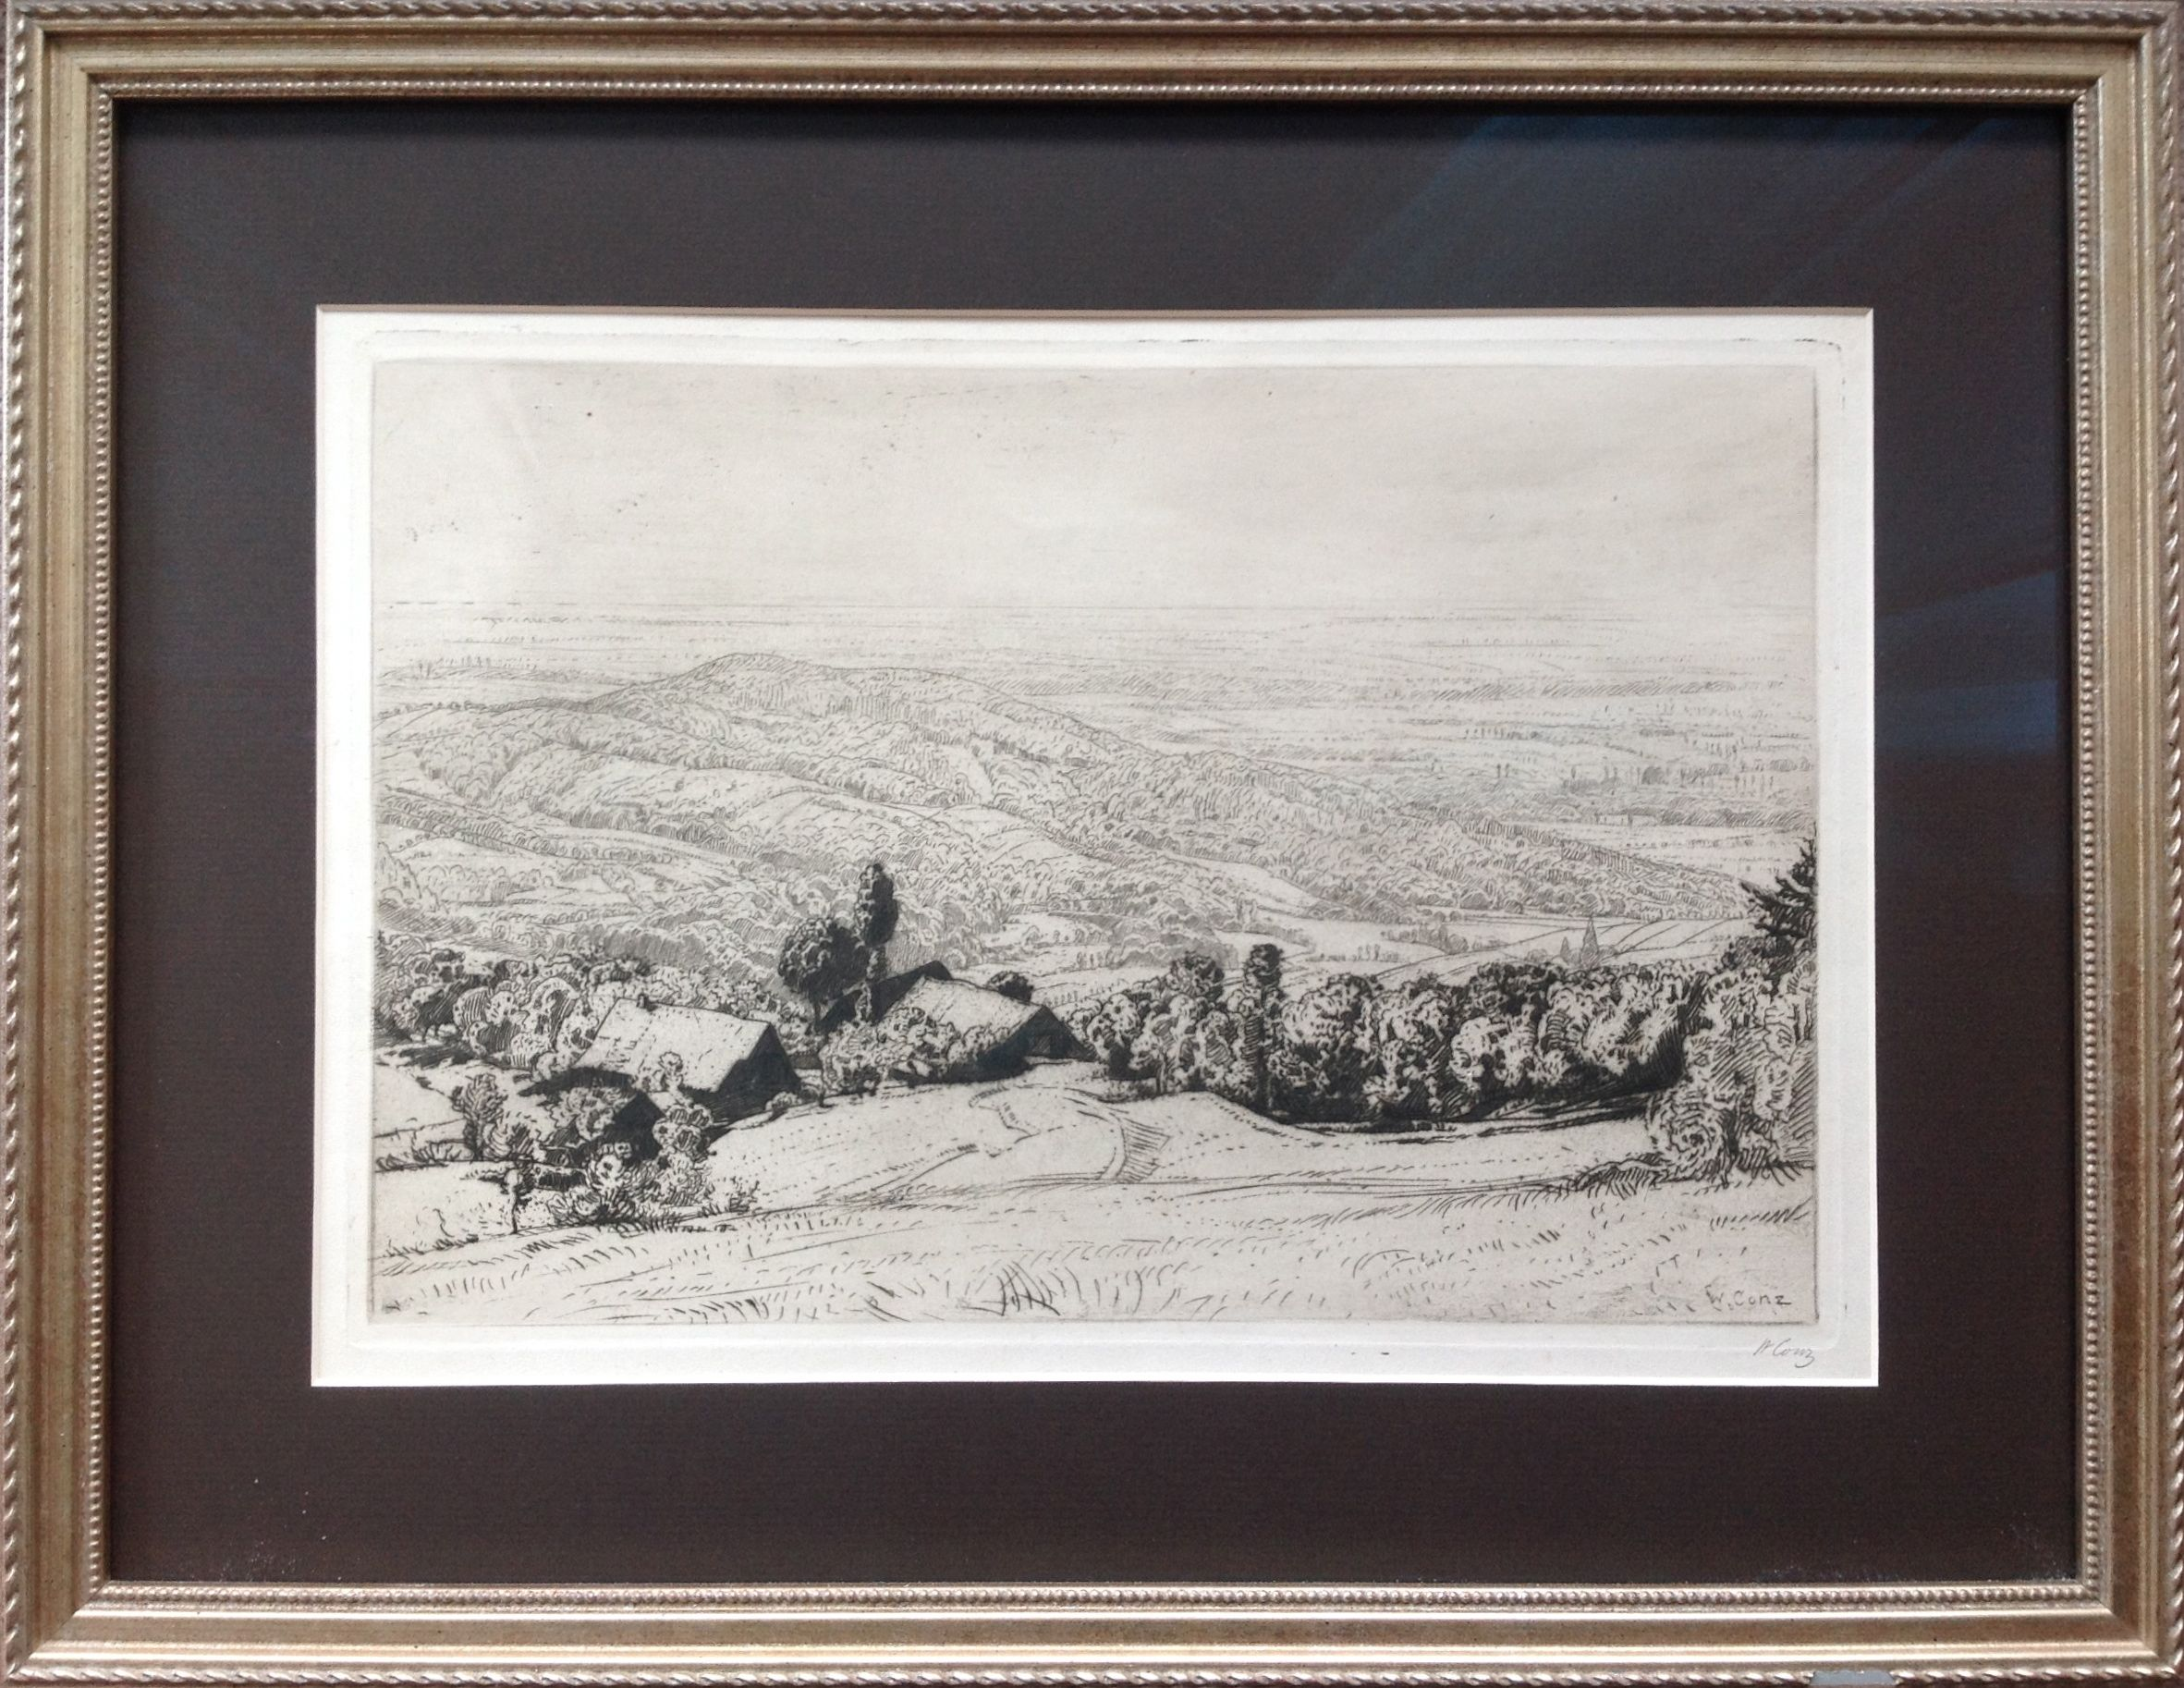 Copper etching of landscape